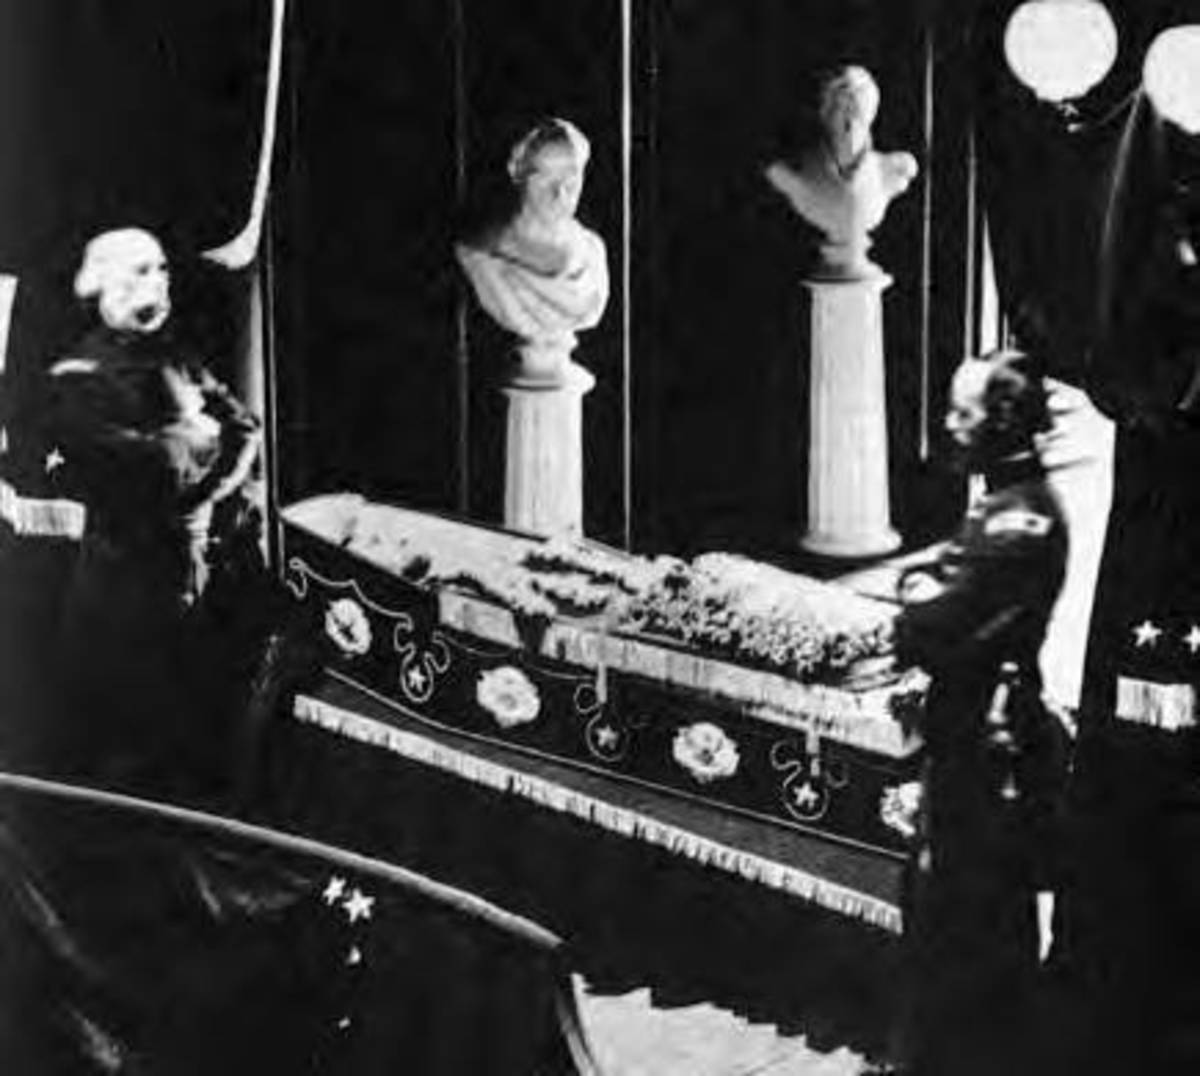 Only Photo Known To Exist Of Lincolns Body Laying At State In His Coffin